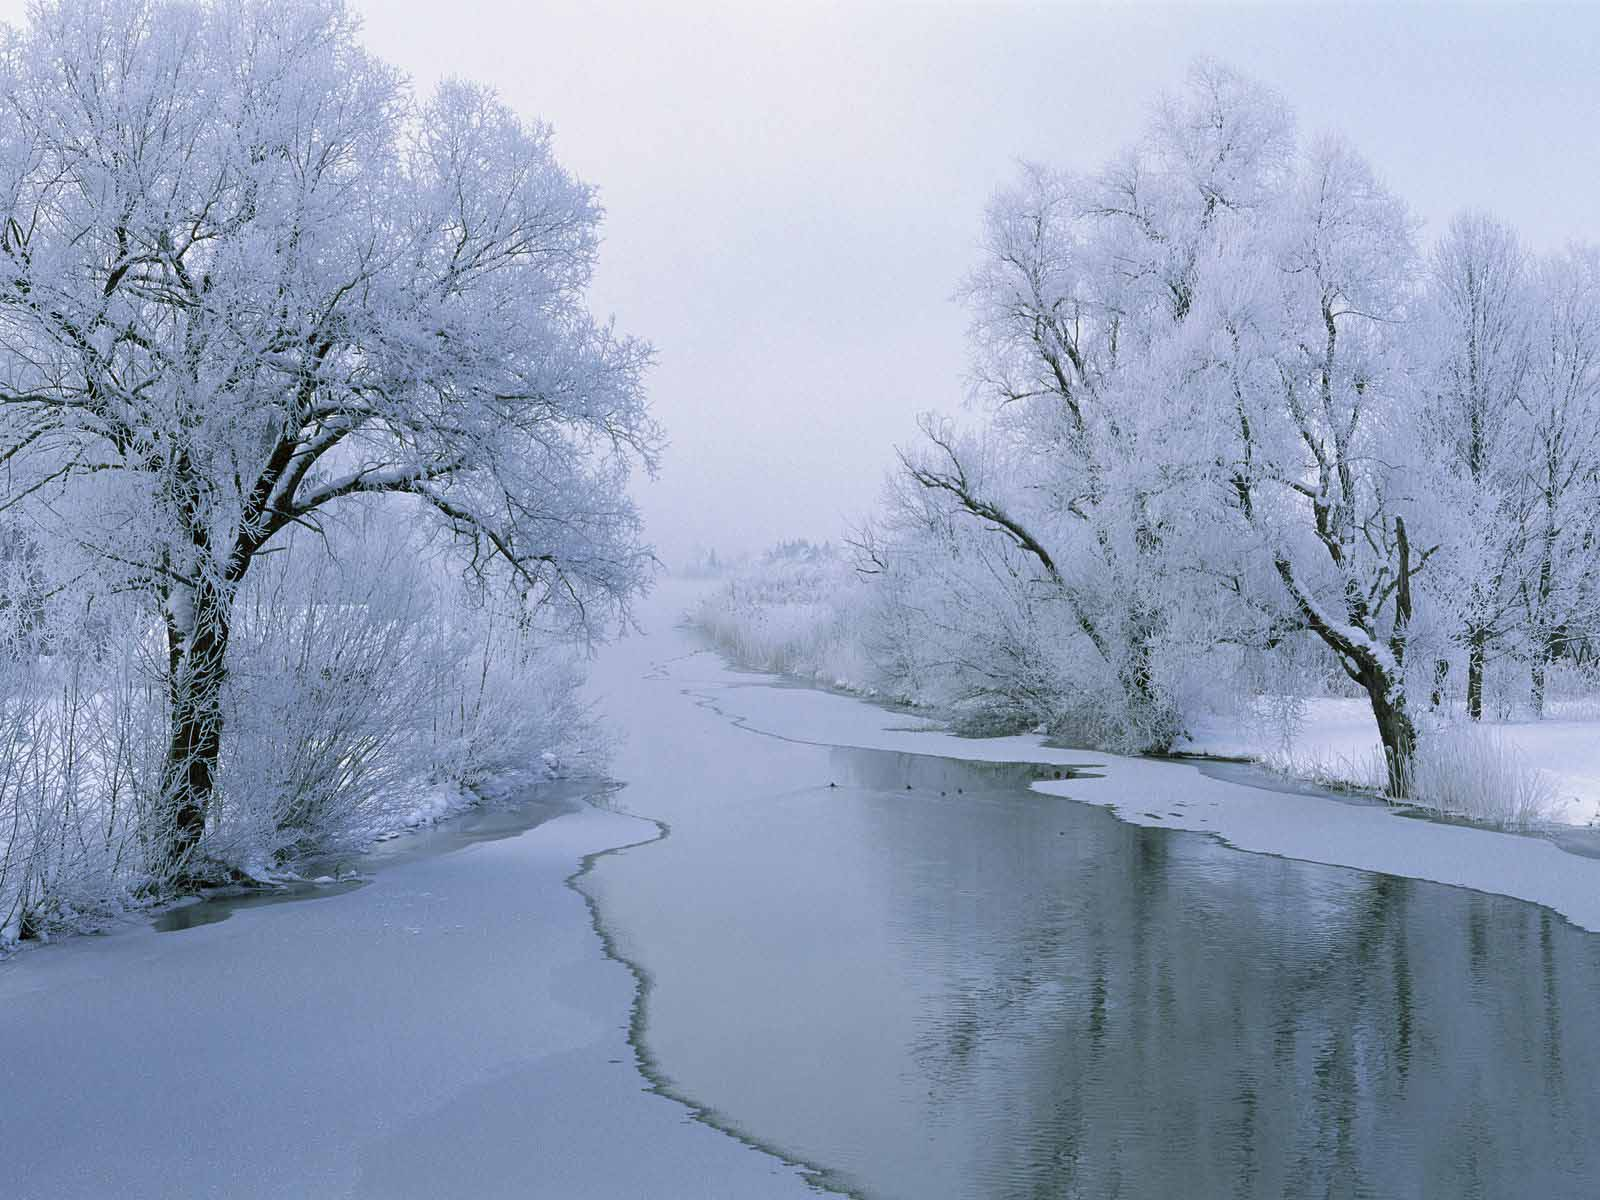 HD Wallpapers: Winter Scenes For Desktop